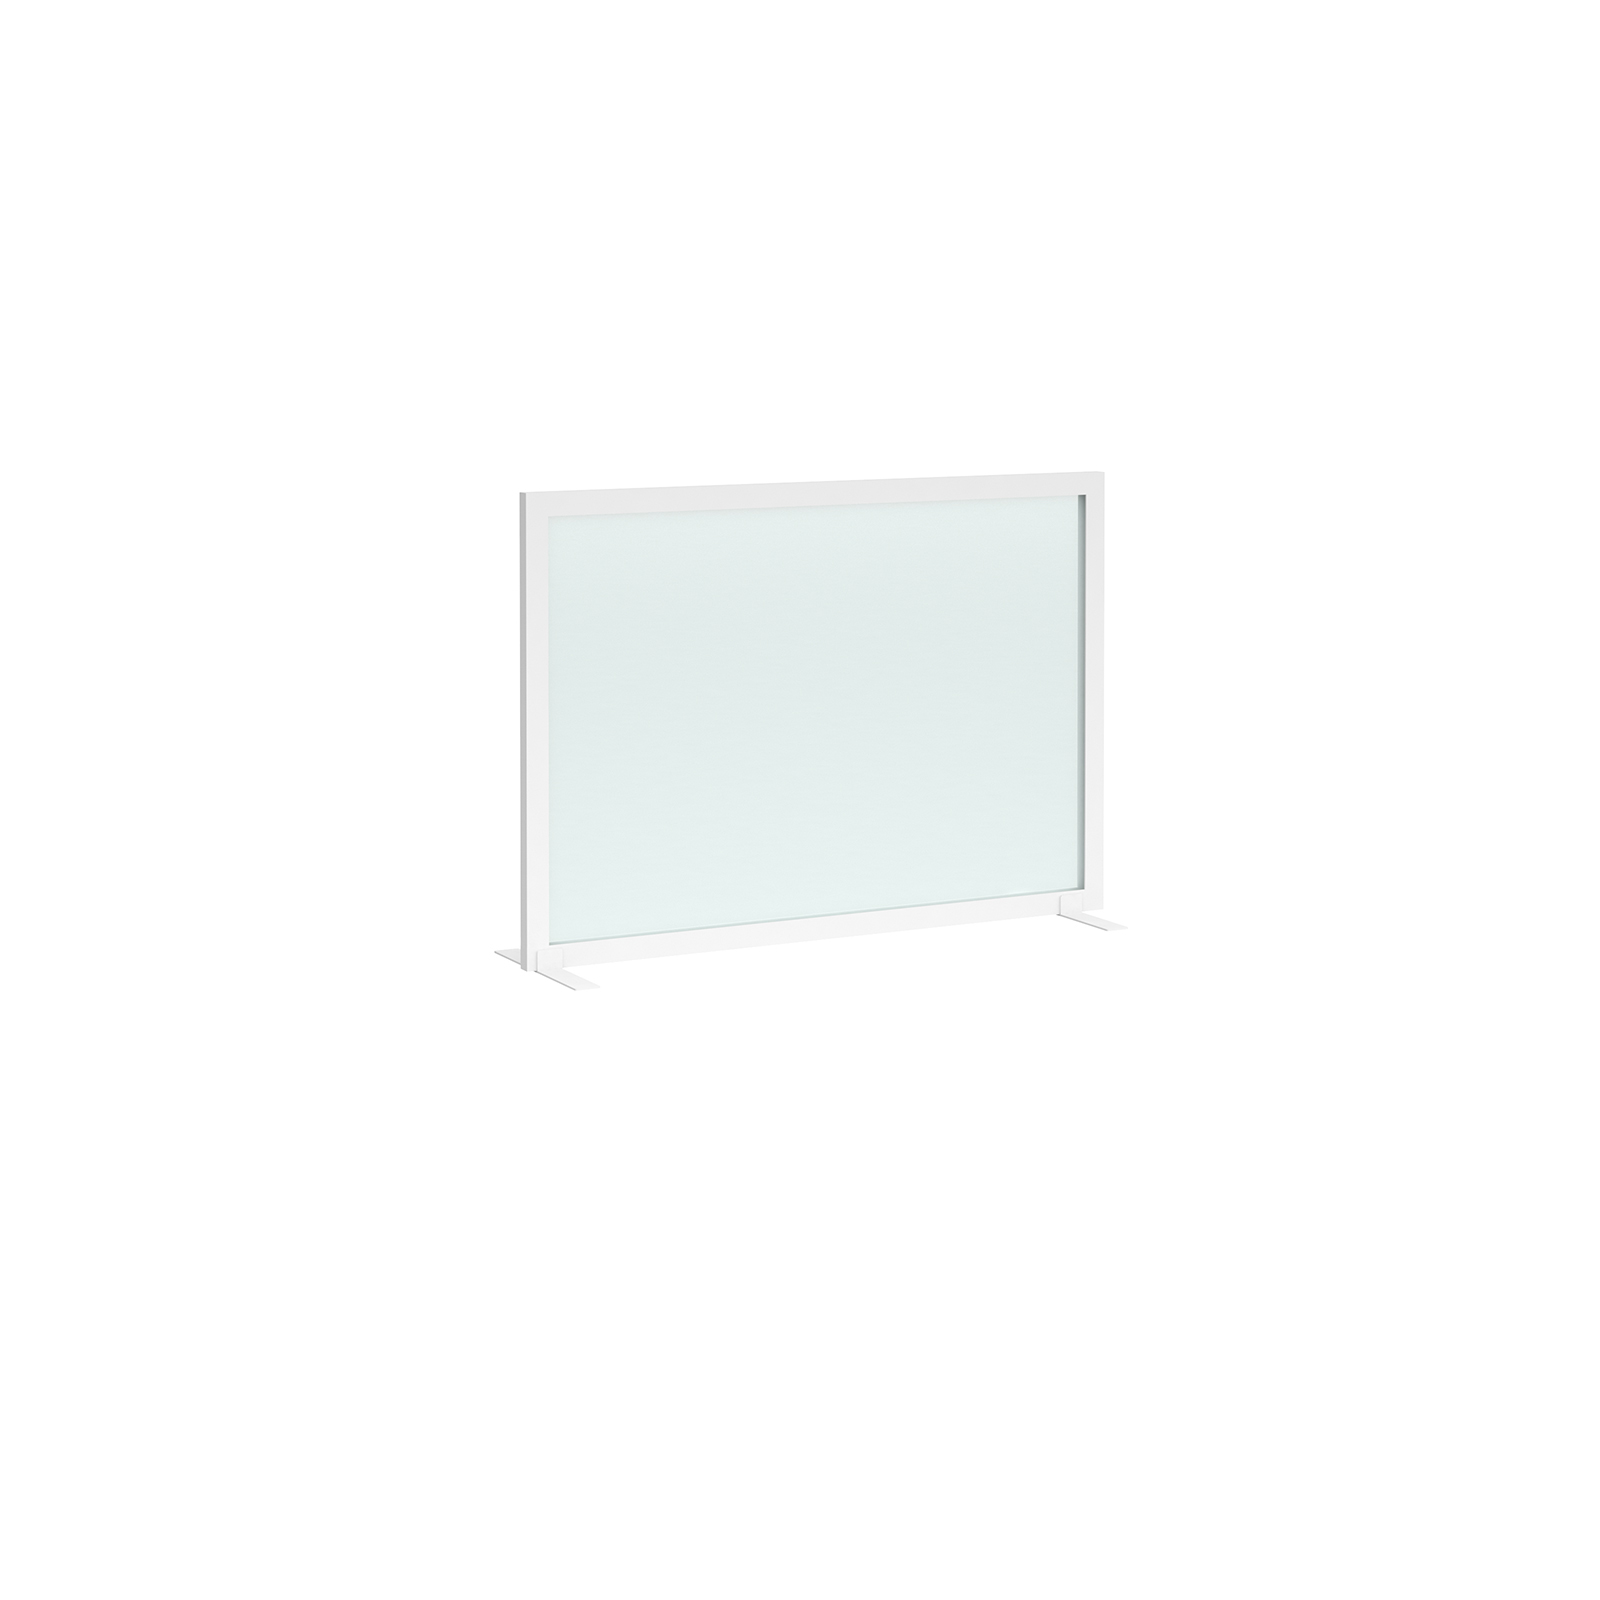 Straight Tops Clear polyvinyl desk screen